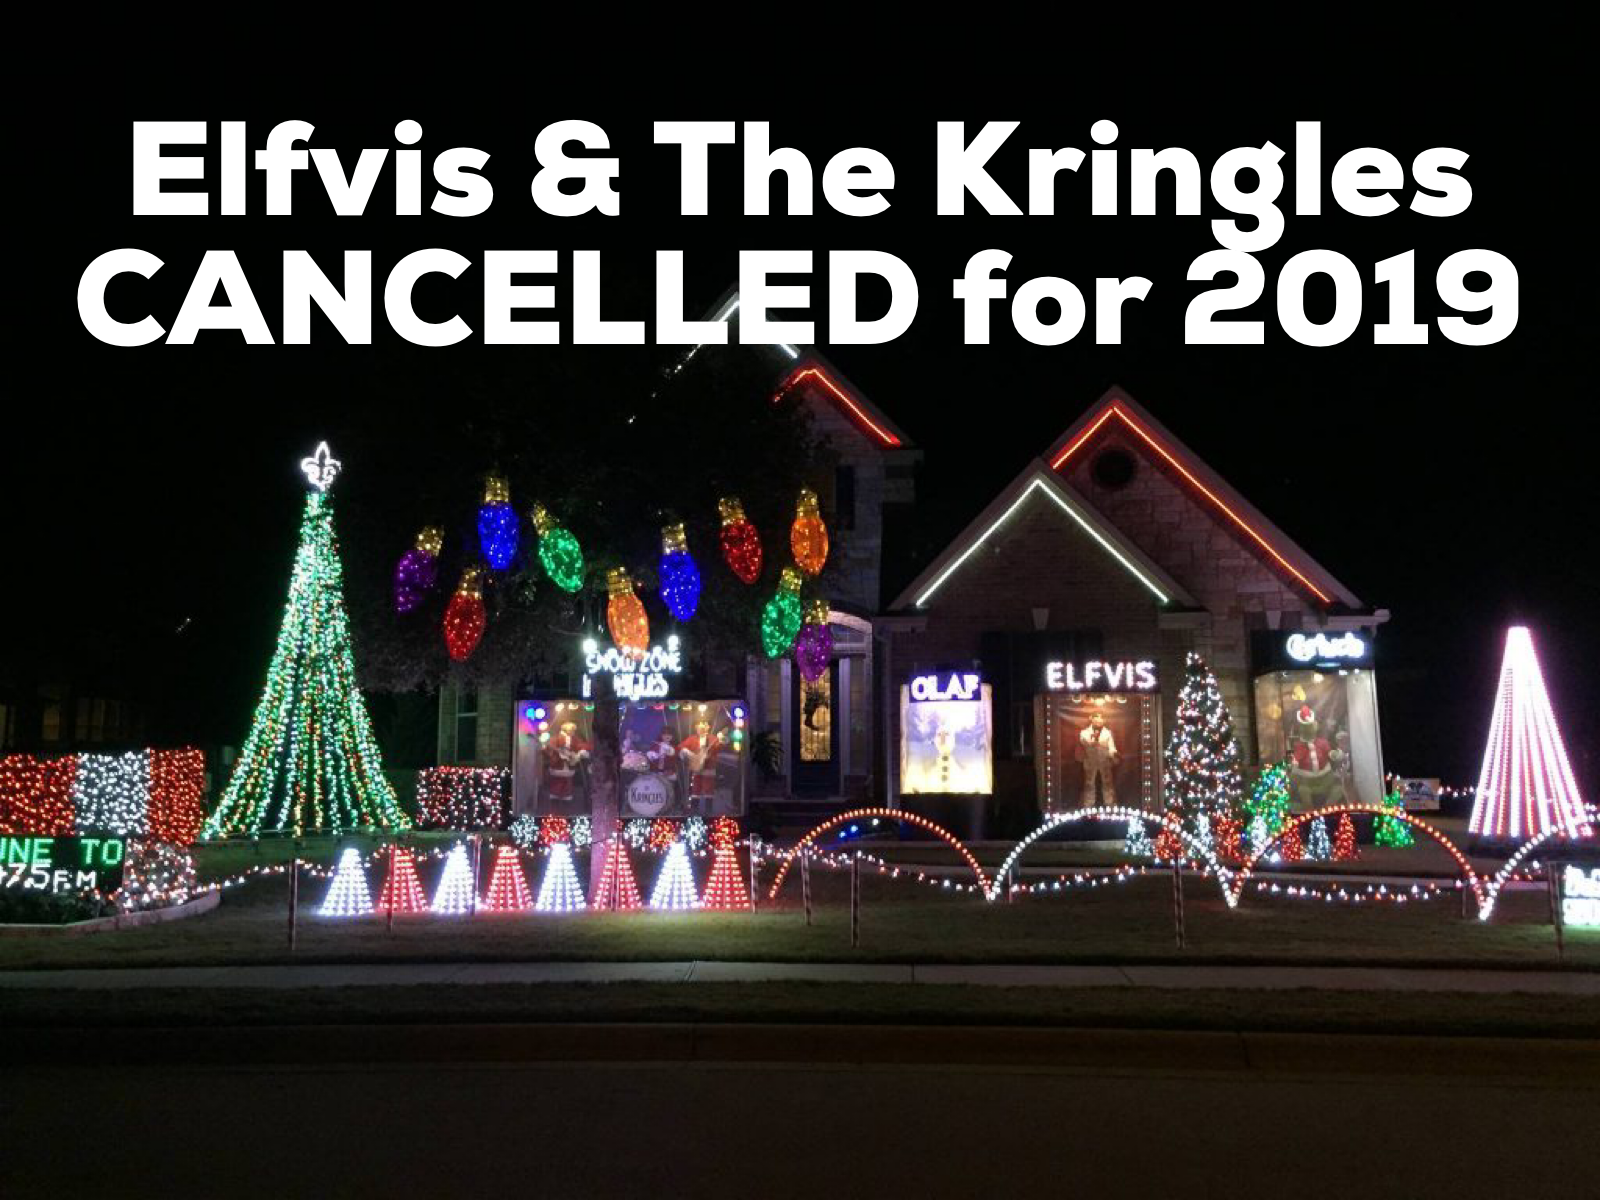 Elfvis & The Kringles CANCELLED for 2019   Round Rock Holiday Display